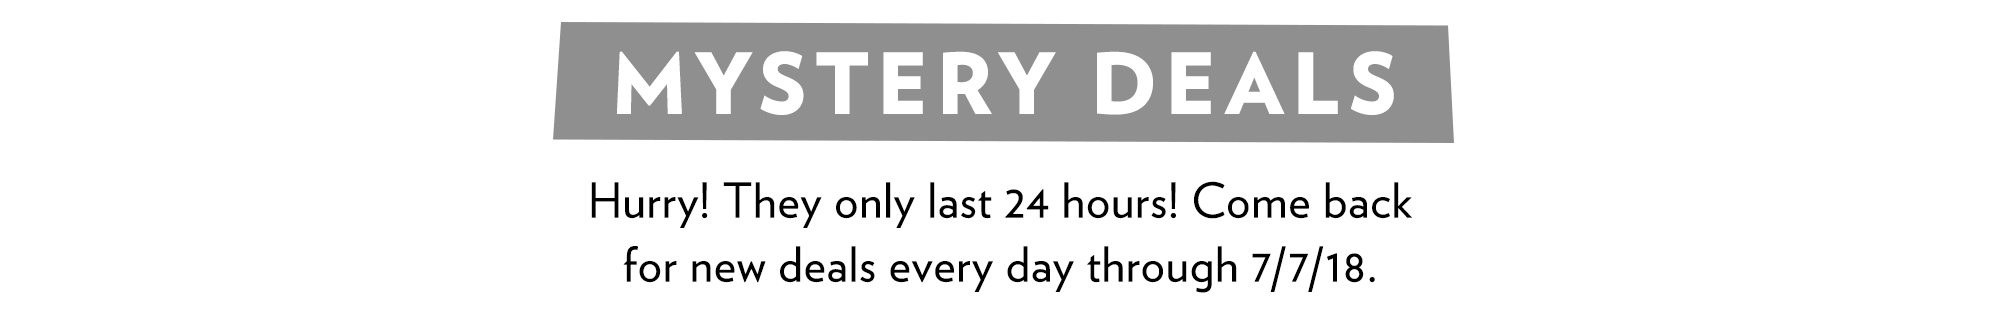 Mystery Deals last 24 hours. New deals every day until 7/7/18